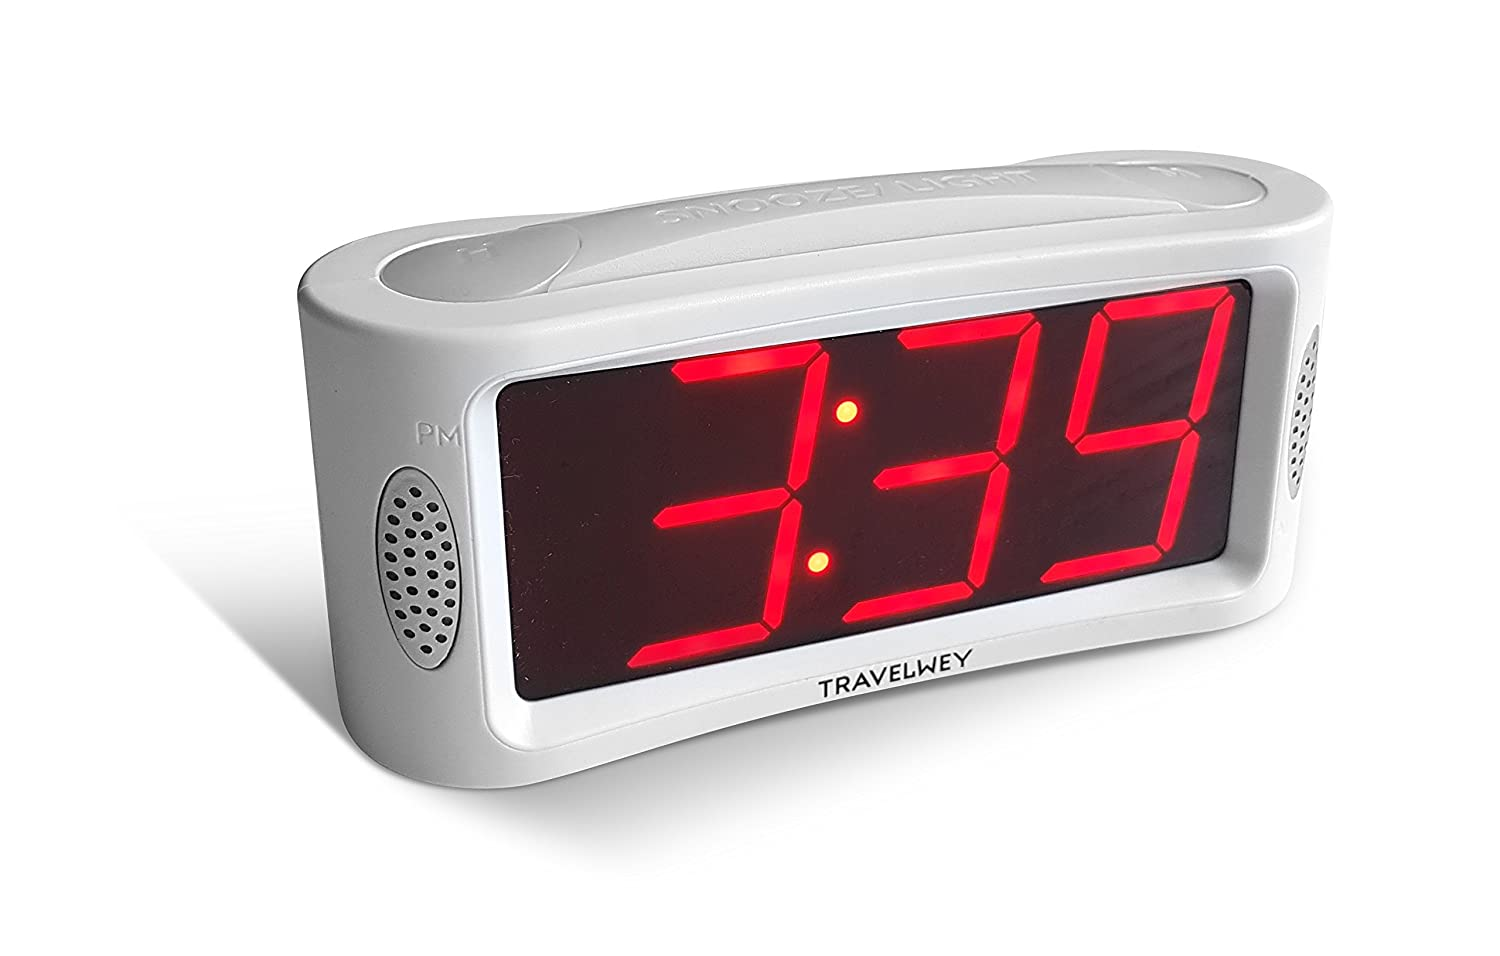 Travelwey HOME LED Digital Alarm Clock - Outlet Powered, No Frills Simple Operation, Large Night Light, Alarm, Snooze, Full Range Brightness Dimmer, Big Red Digit Display, White